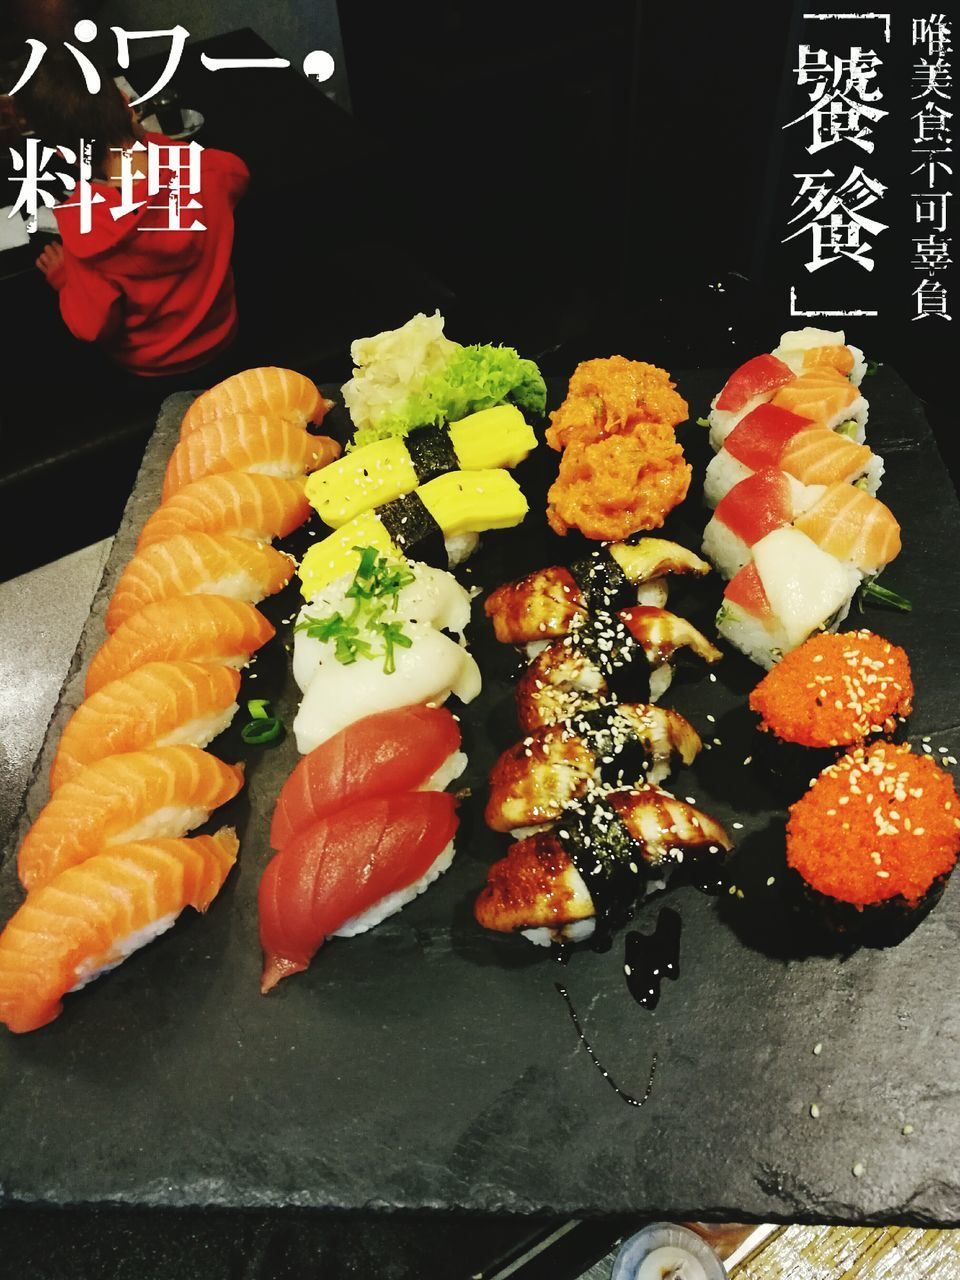 food and drink, sushi, food, seafood, freshness, japanese food, healthy eating, no people, ready-to-eat, plate, salmon, sashimi, indoors, close-up, day